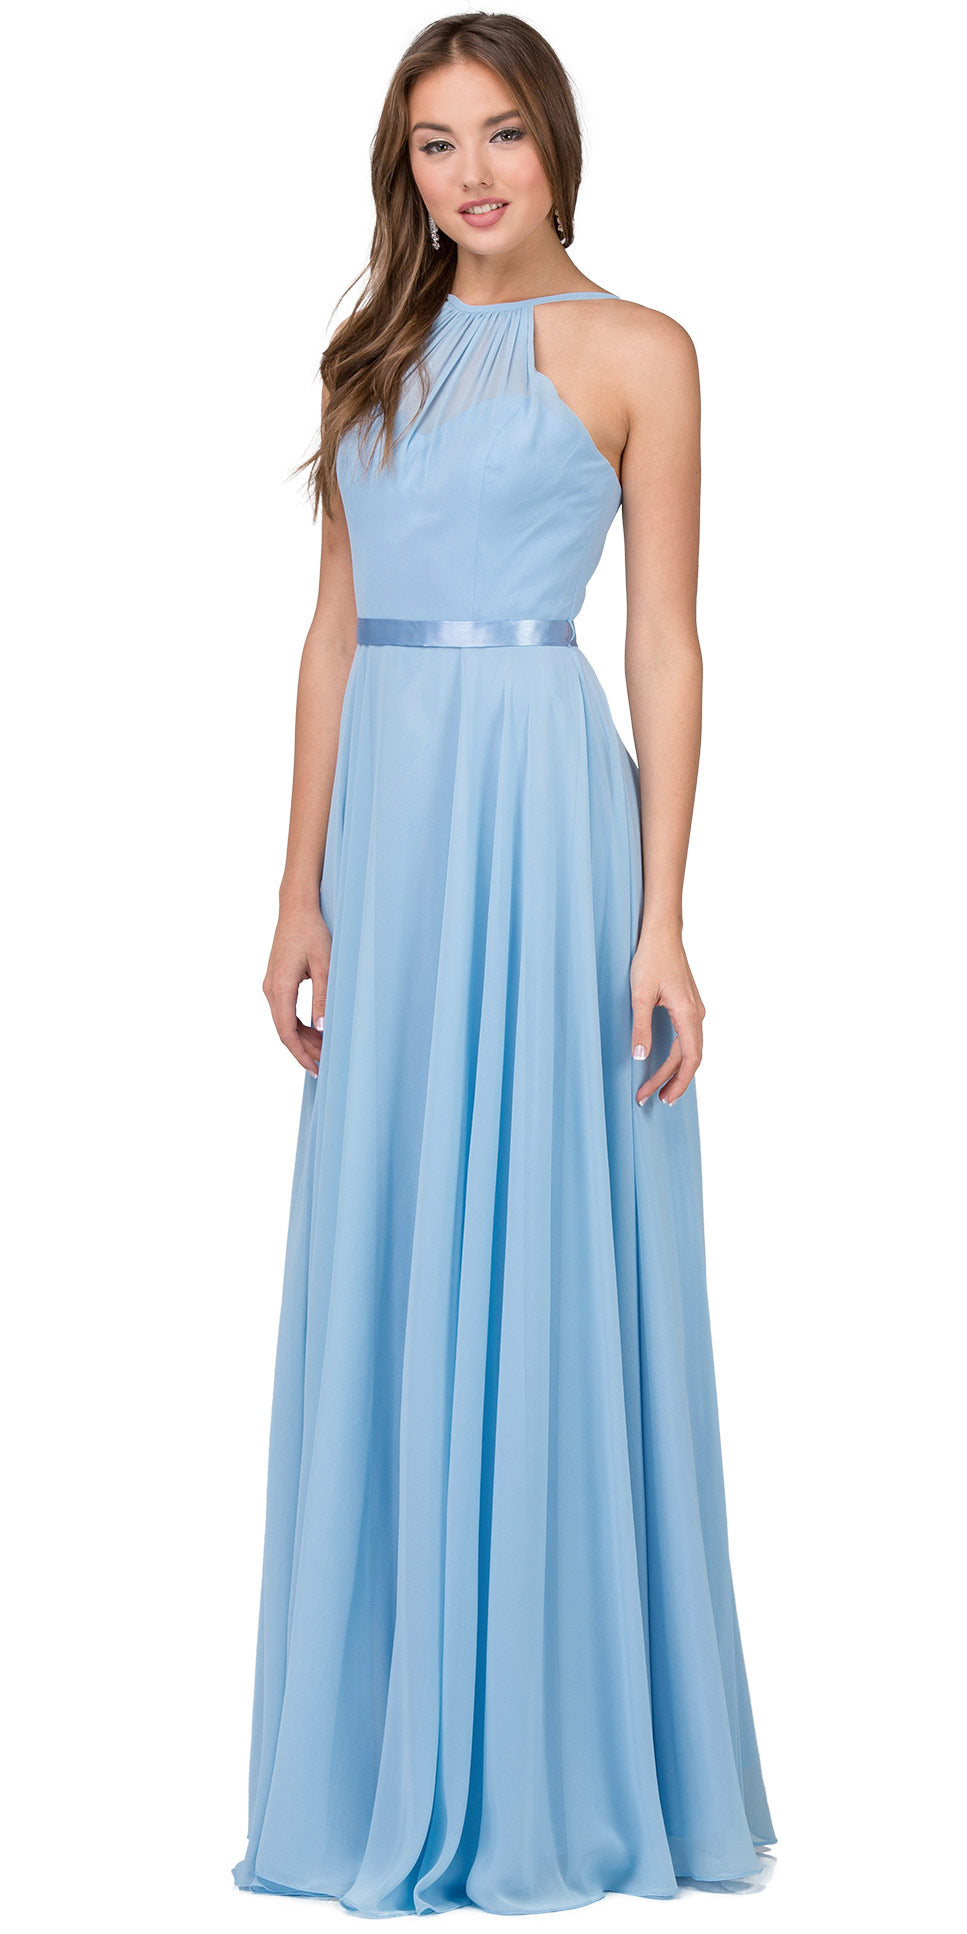 Main image of A-line High Neck Chiffon Long Bridesmaid Dress